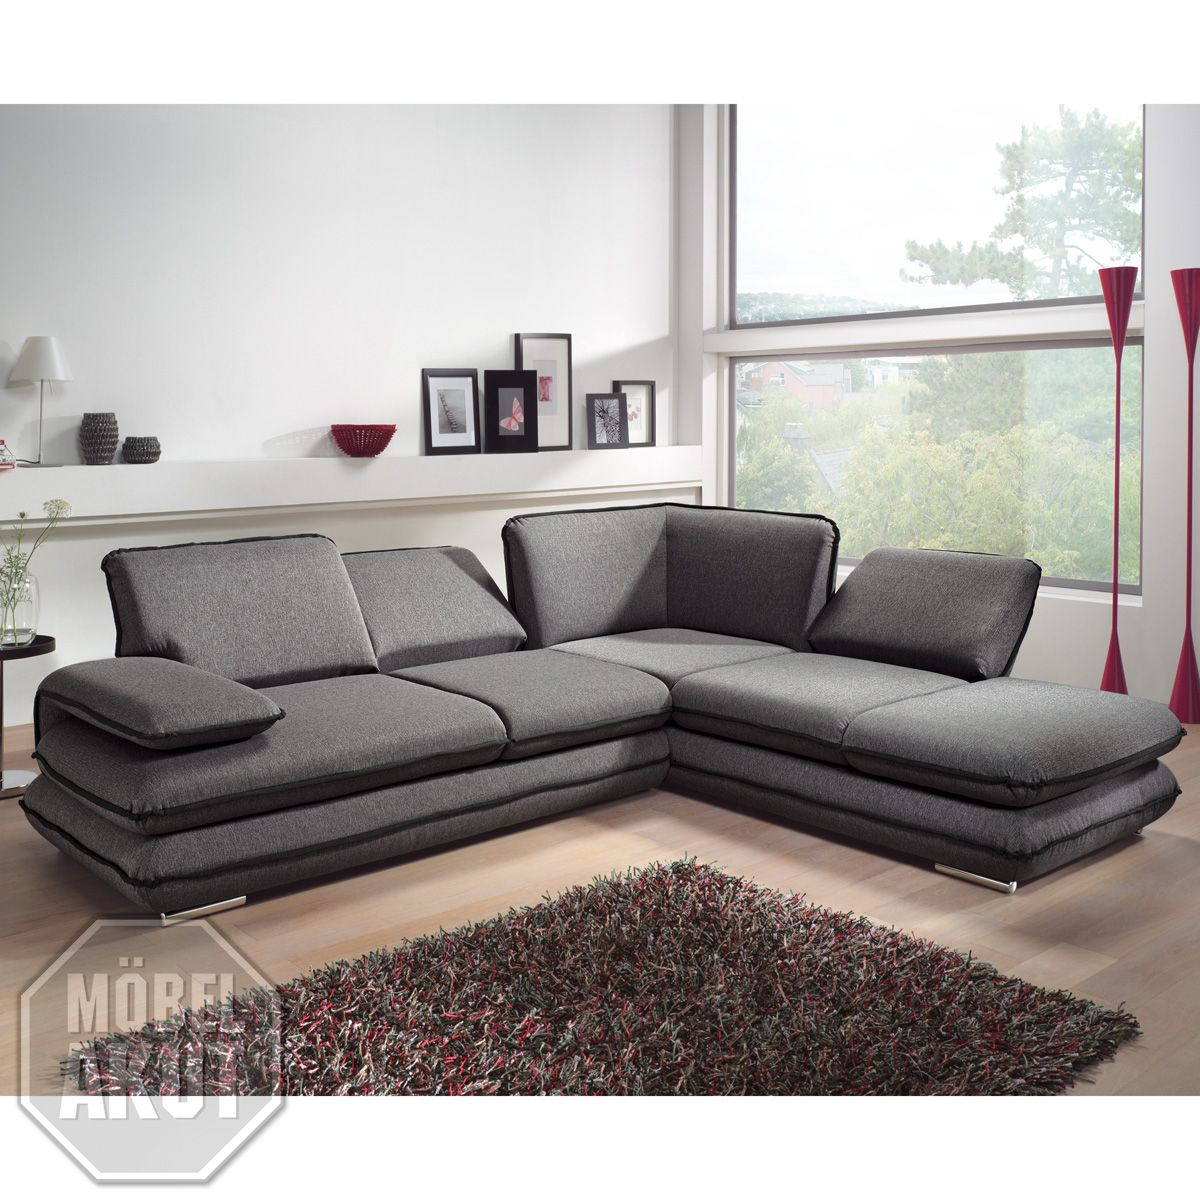 Couch U Form Grau 75 Genial Kollektion Von Sofa Grau Schwarz | Modern Couch, Couch, Home Decor